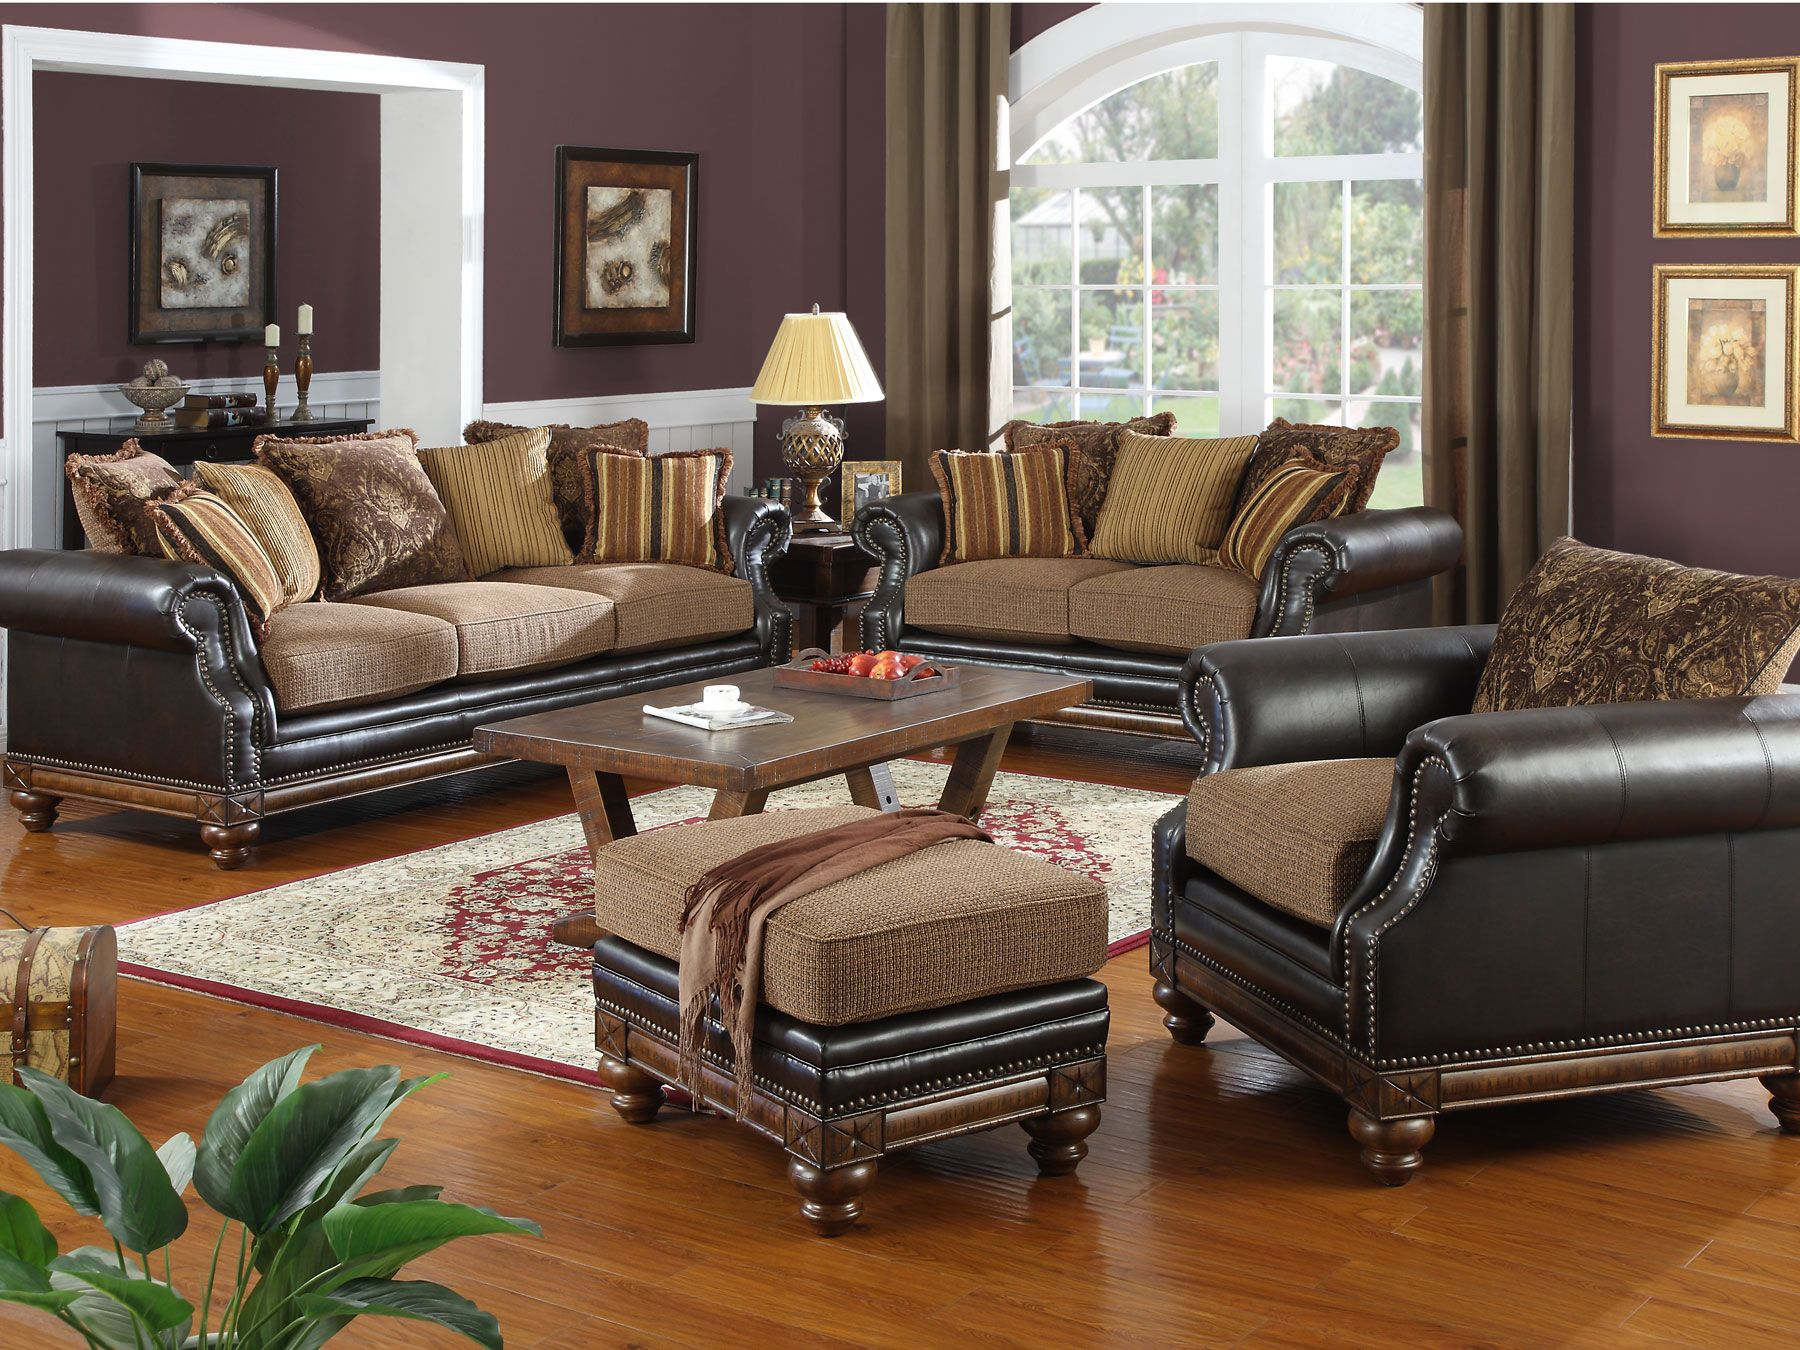 Image For Godrej Sofa Set Price List Ideas